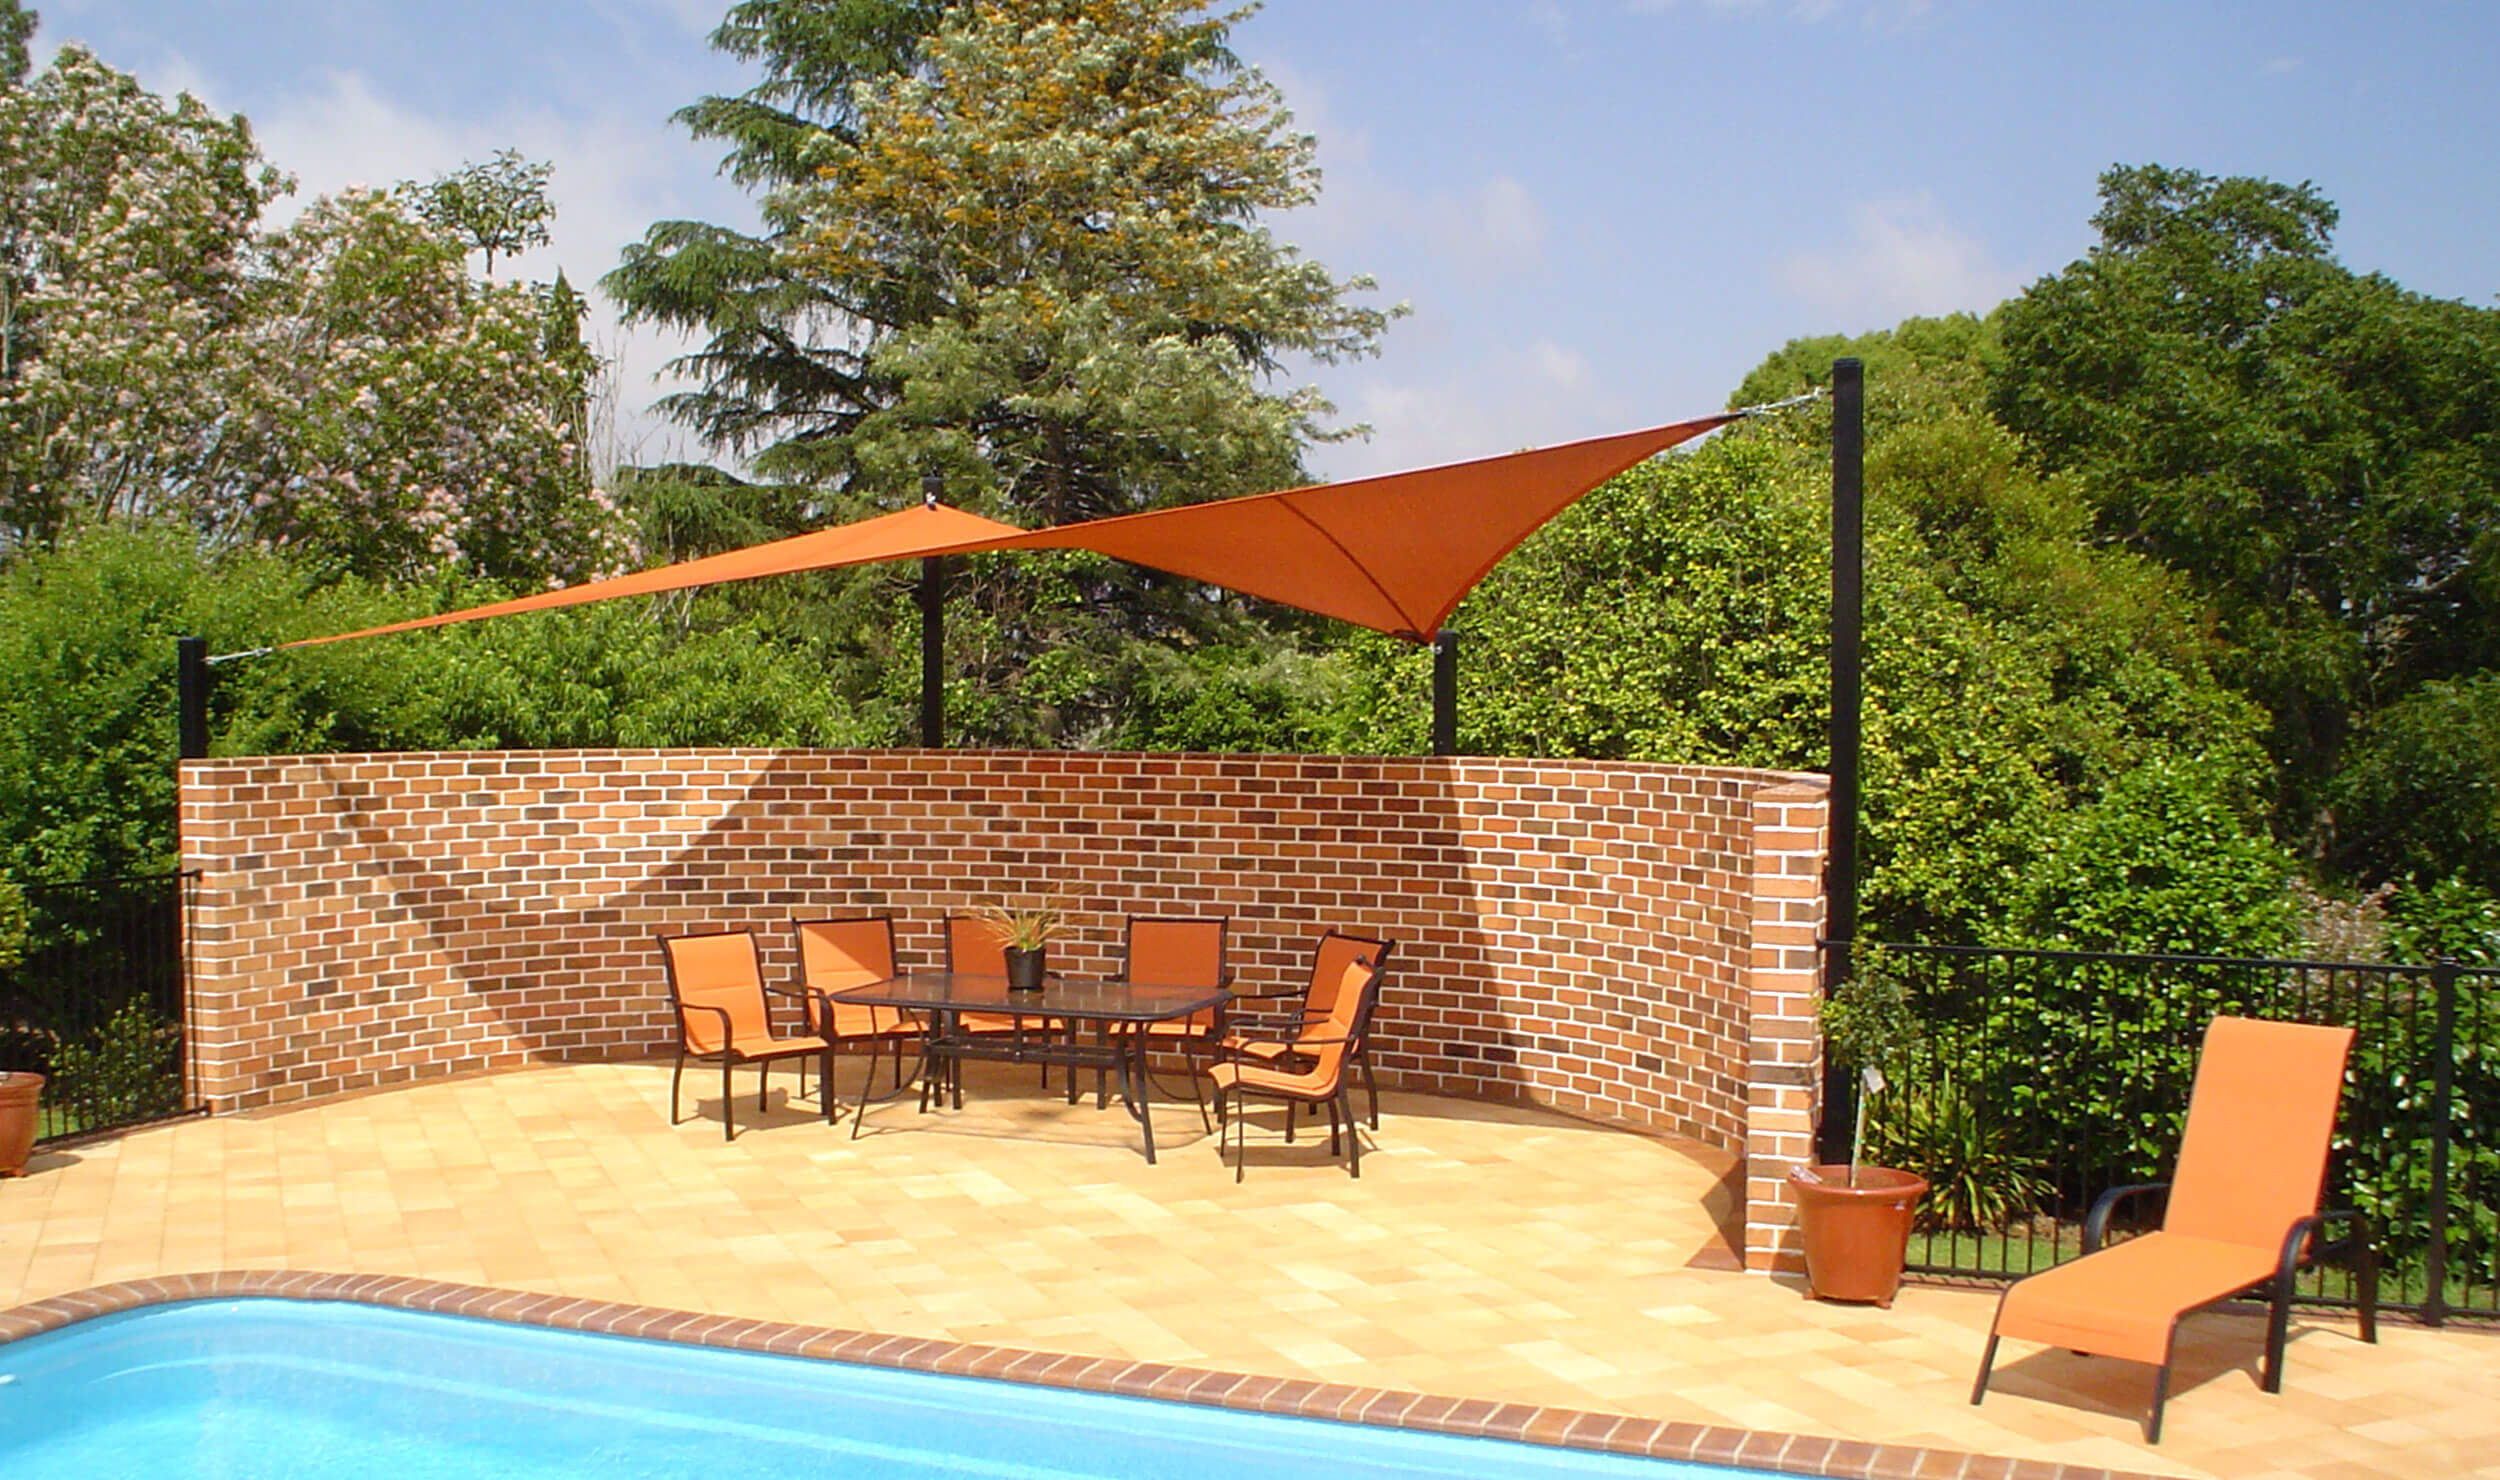 Orange Shade Sail near backyard pool